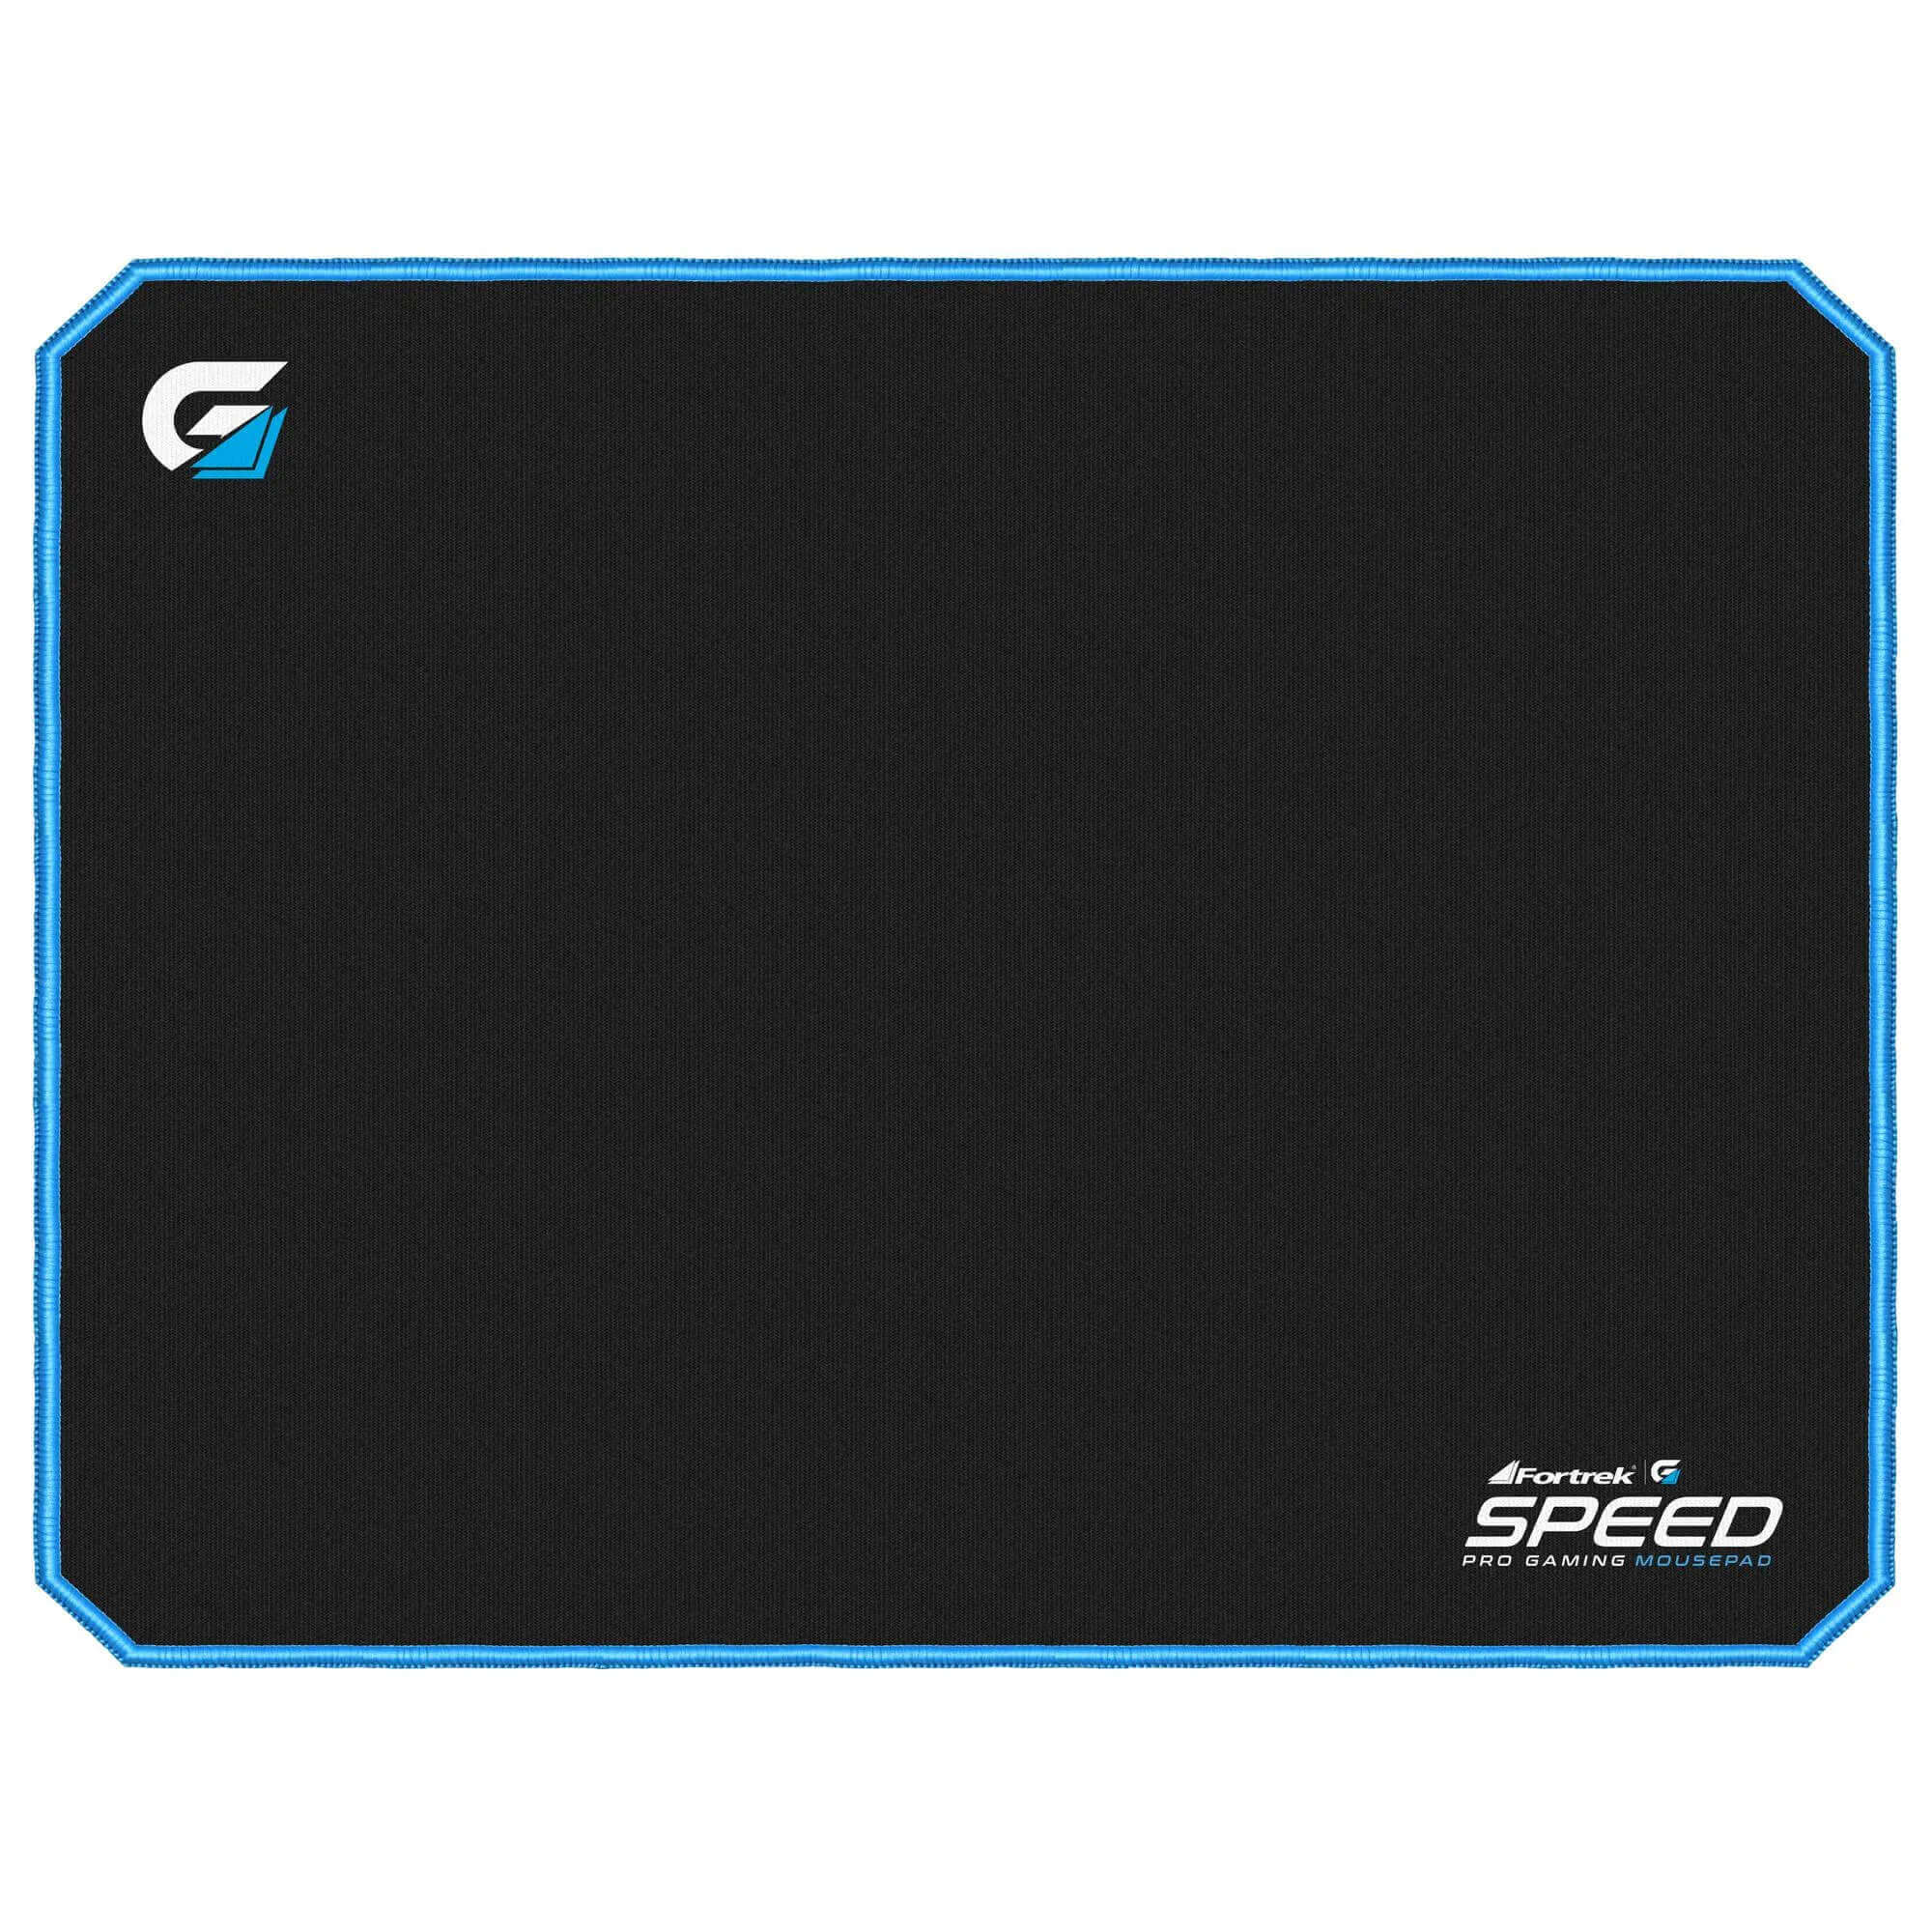 Mouse Pad Speed 320x240mm Fortrek Borda Azul